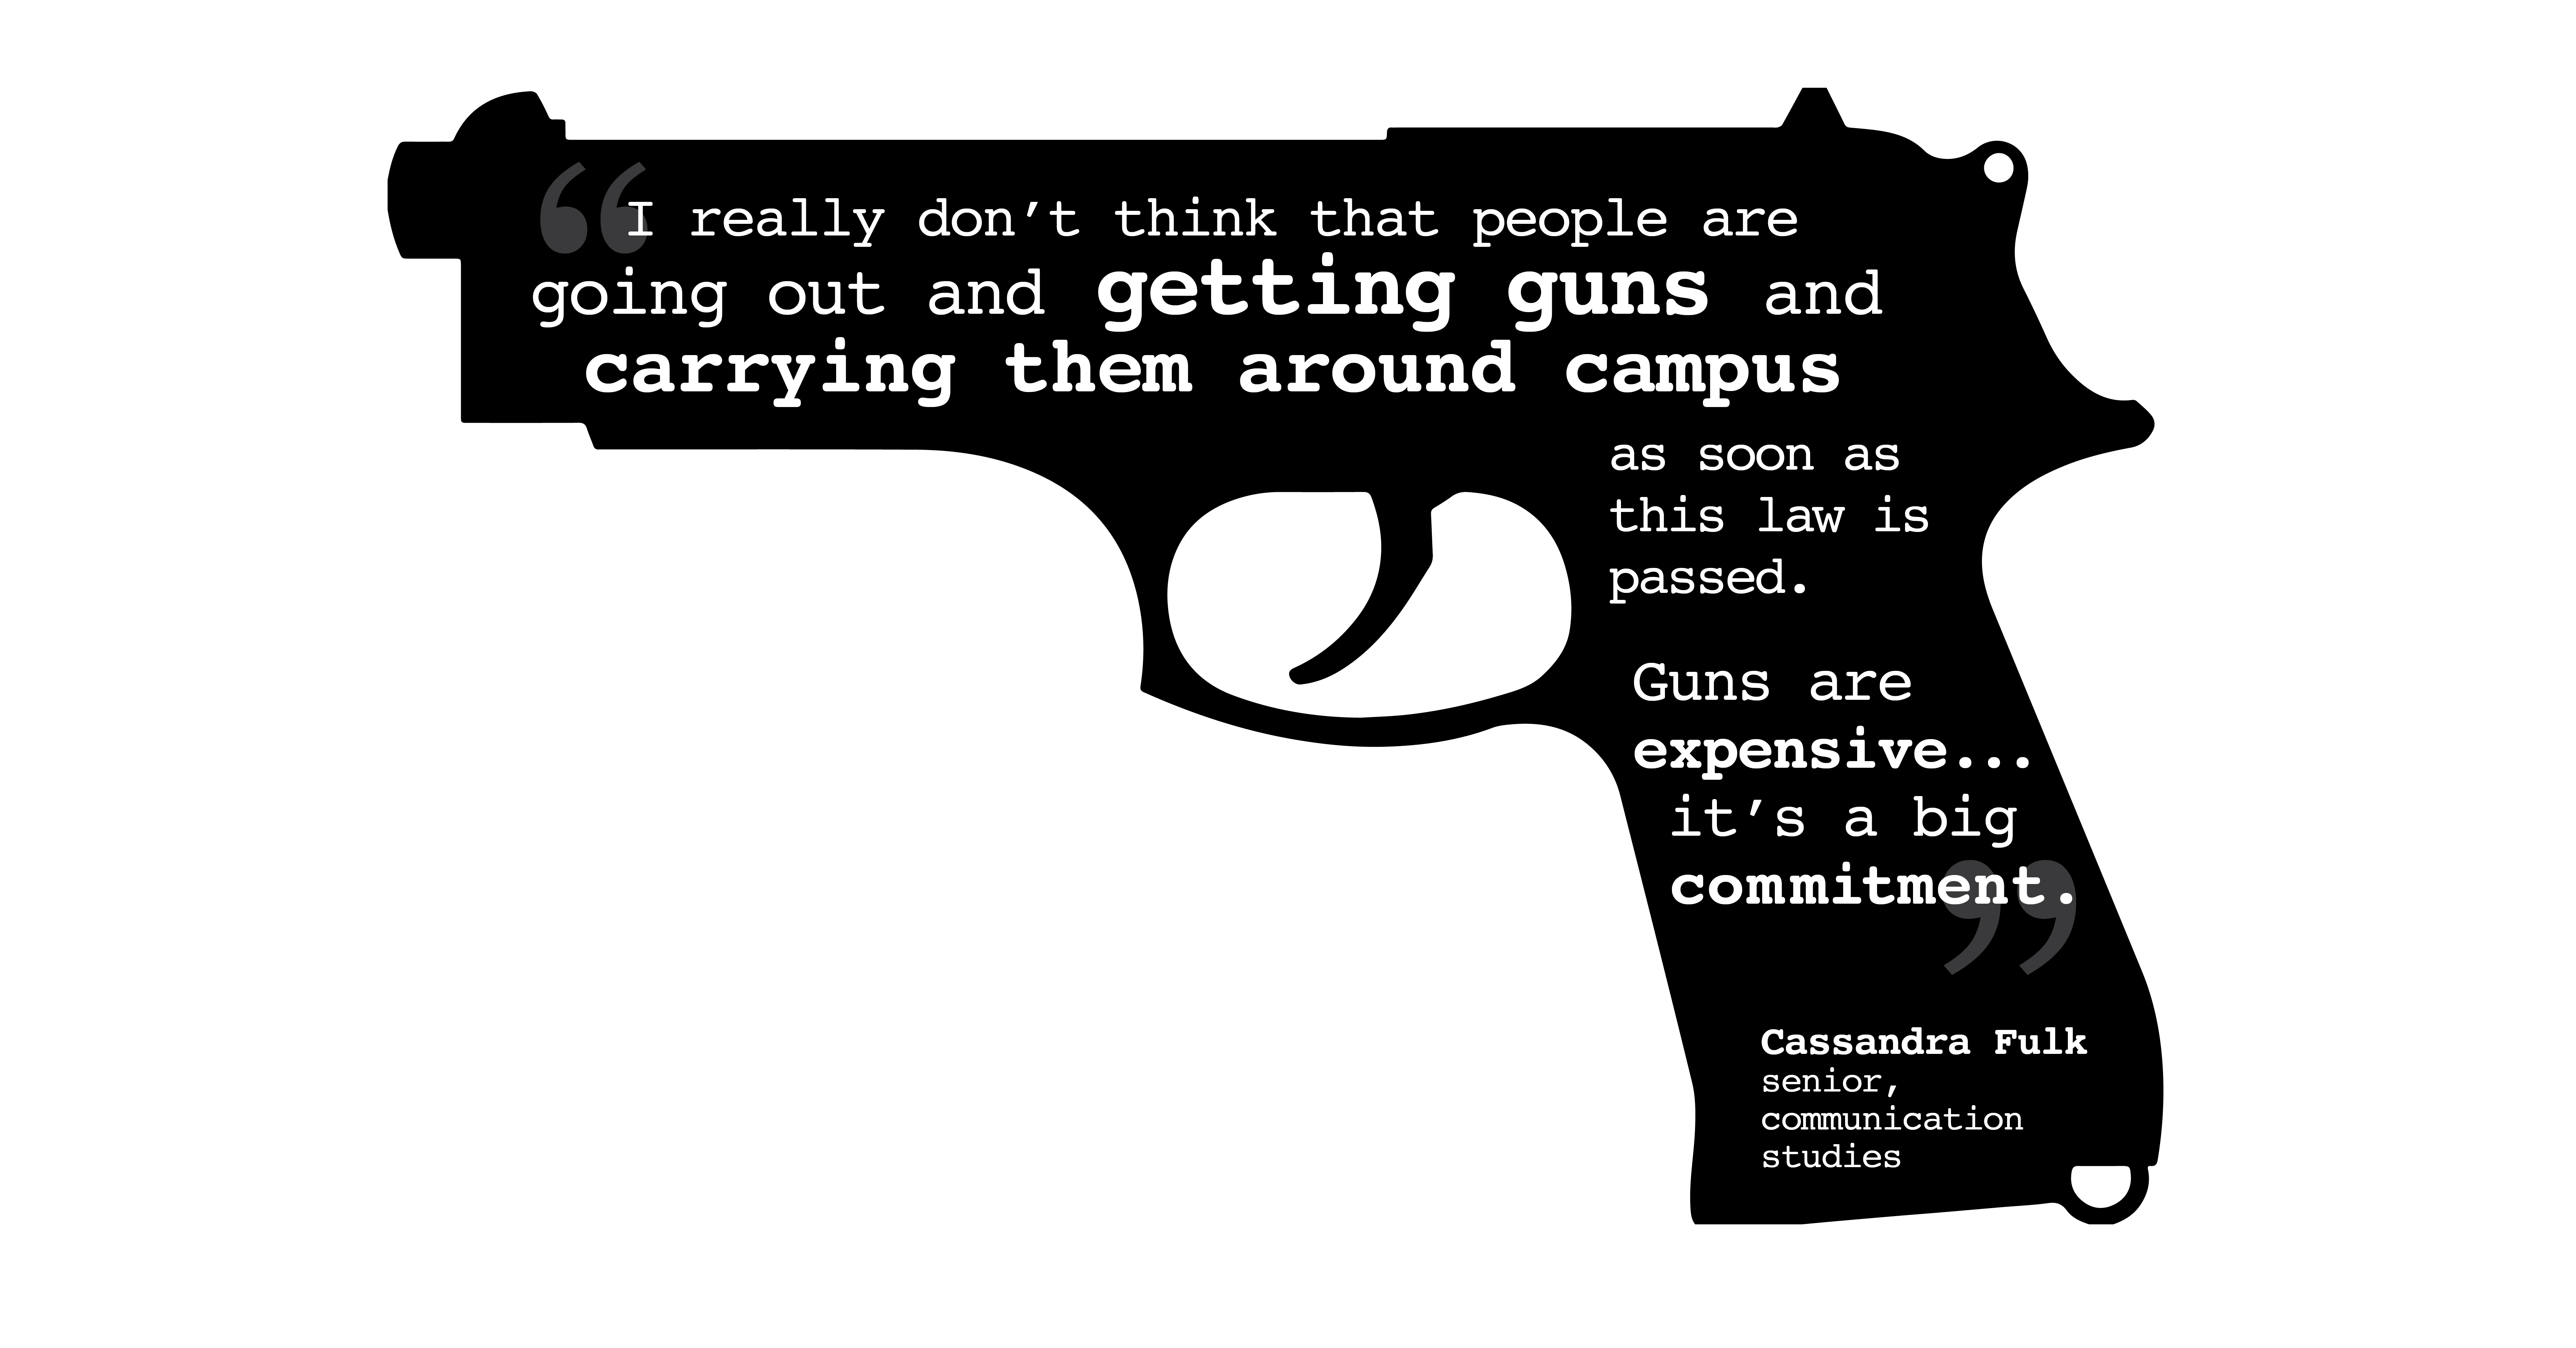 Guns on Campus' Laws for Public Colleges and Universities – by The Campaign to Keep Guns off Campus